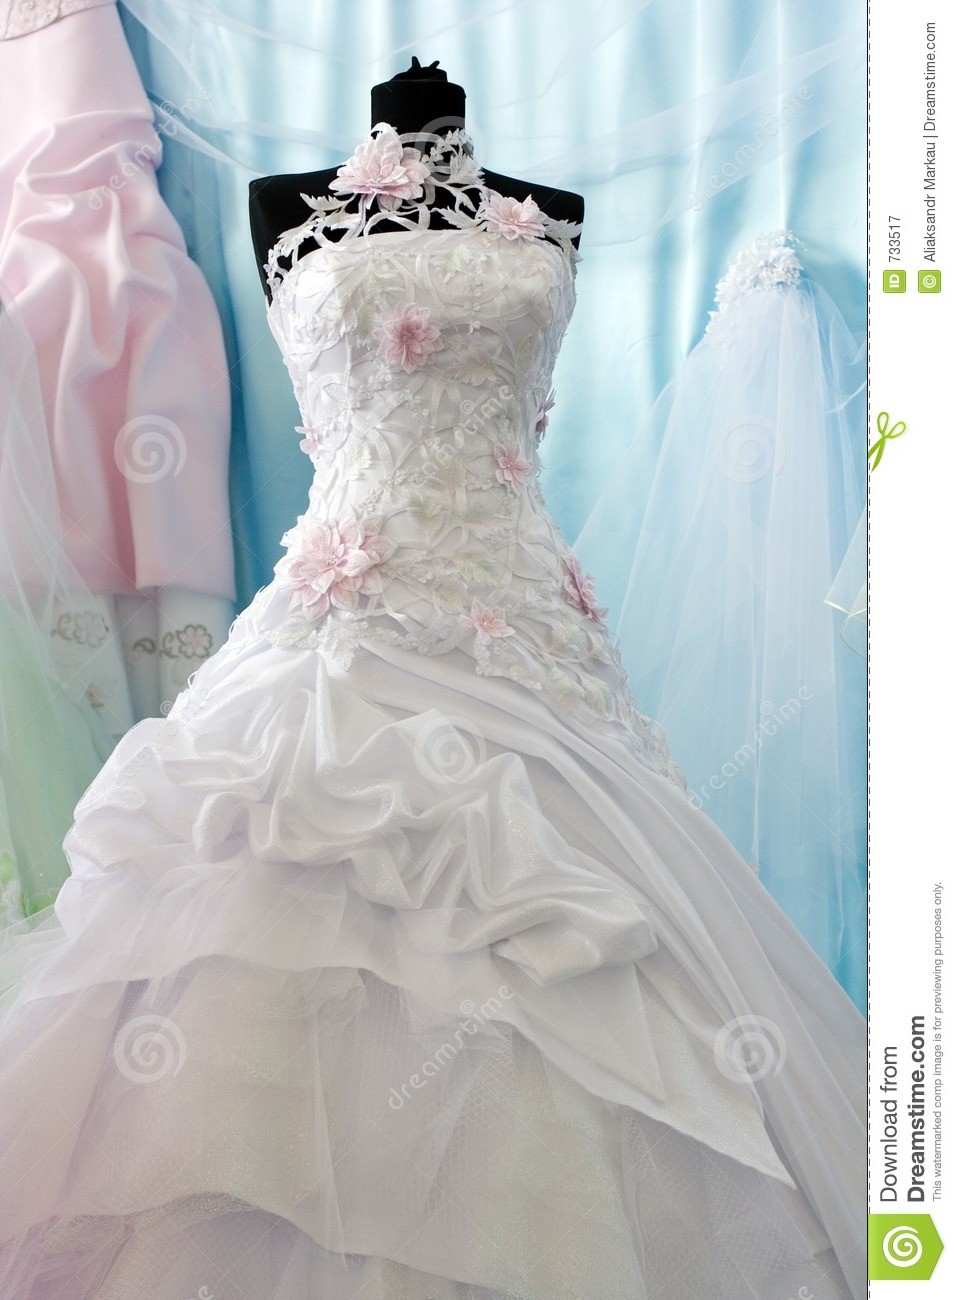 Wedding dress stock image image of sale shoppe gown for Wedding dress in stock